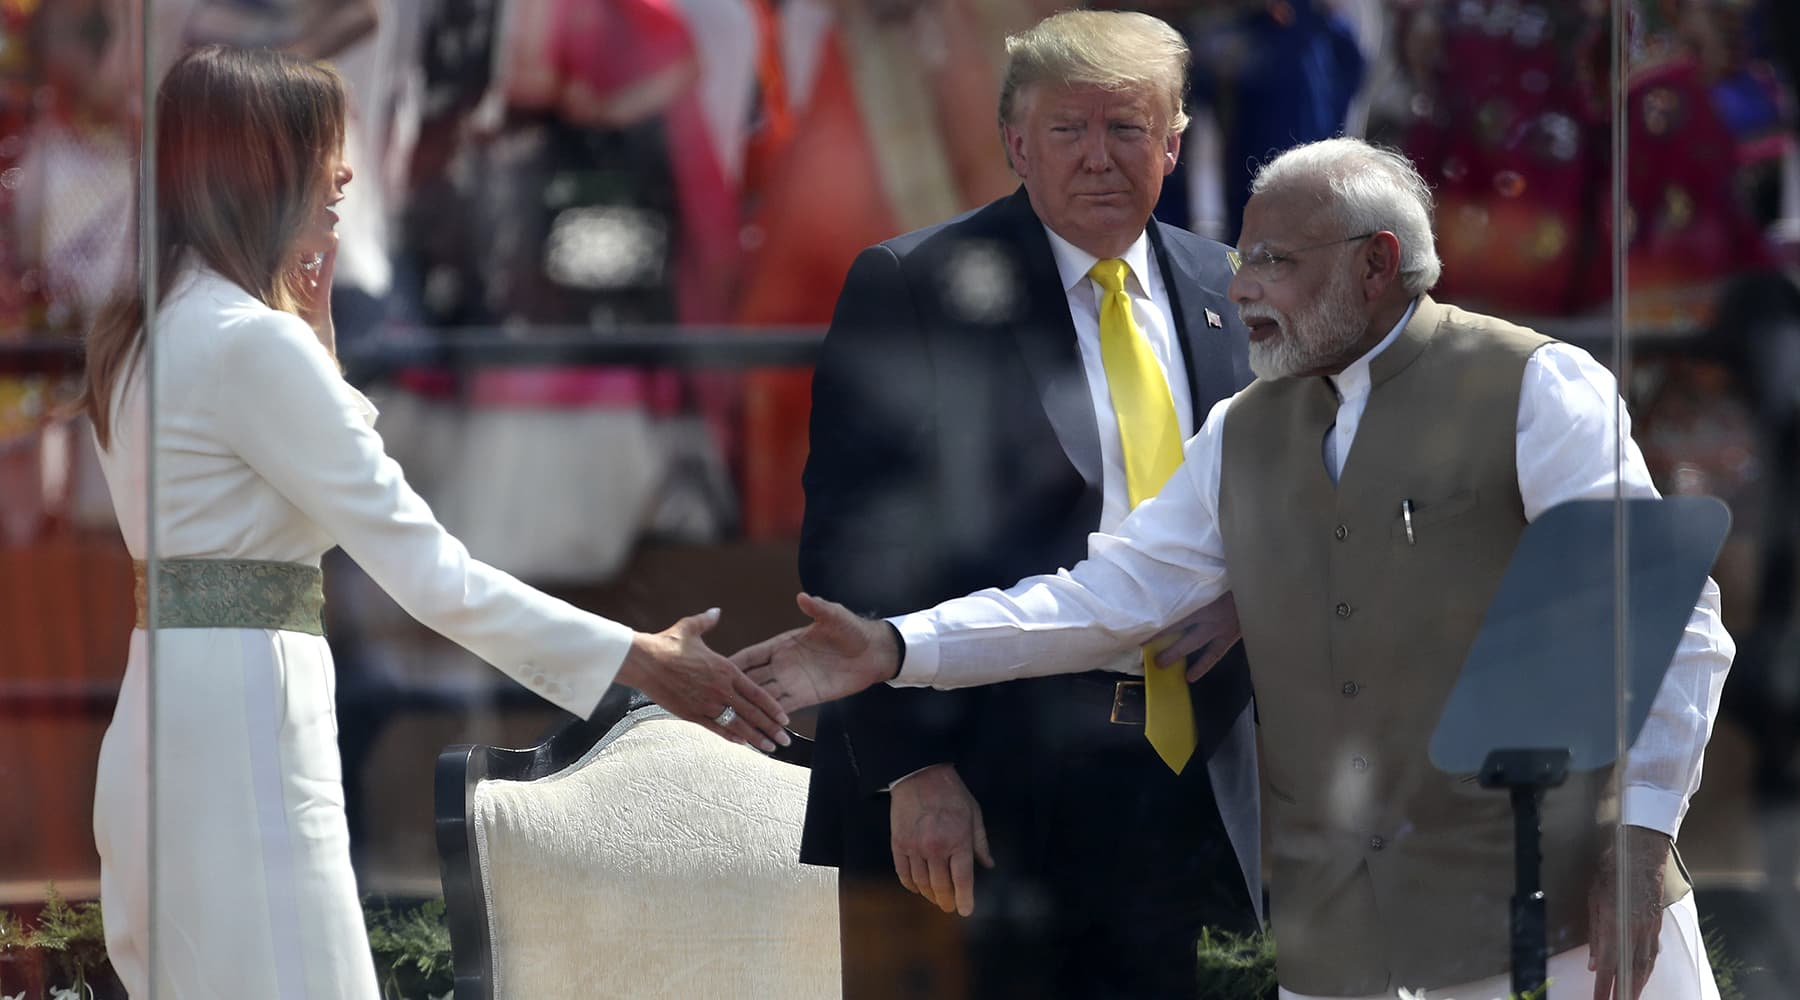 US President Donald Trump, centre, watches as first lady Melania Trump, left, shakes hands with Indian Prime Minister Narendra Modi during the 'Namaste Trump' event at Sardar Patel Stadium in Ahmedabad, India on Feb 24.  — AP